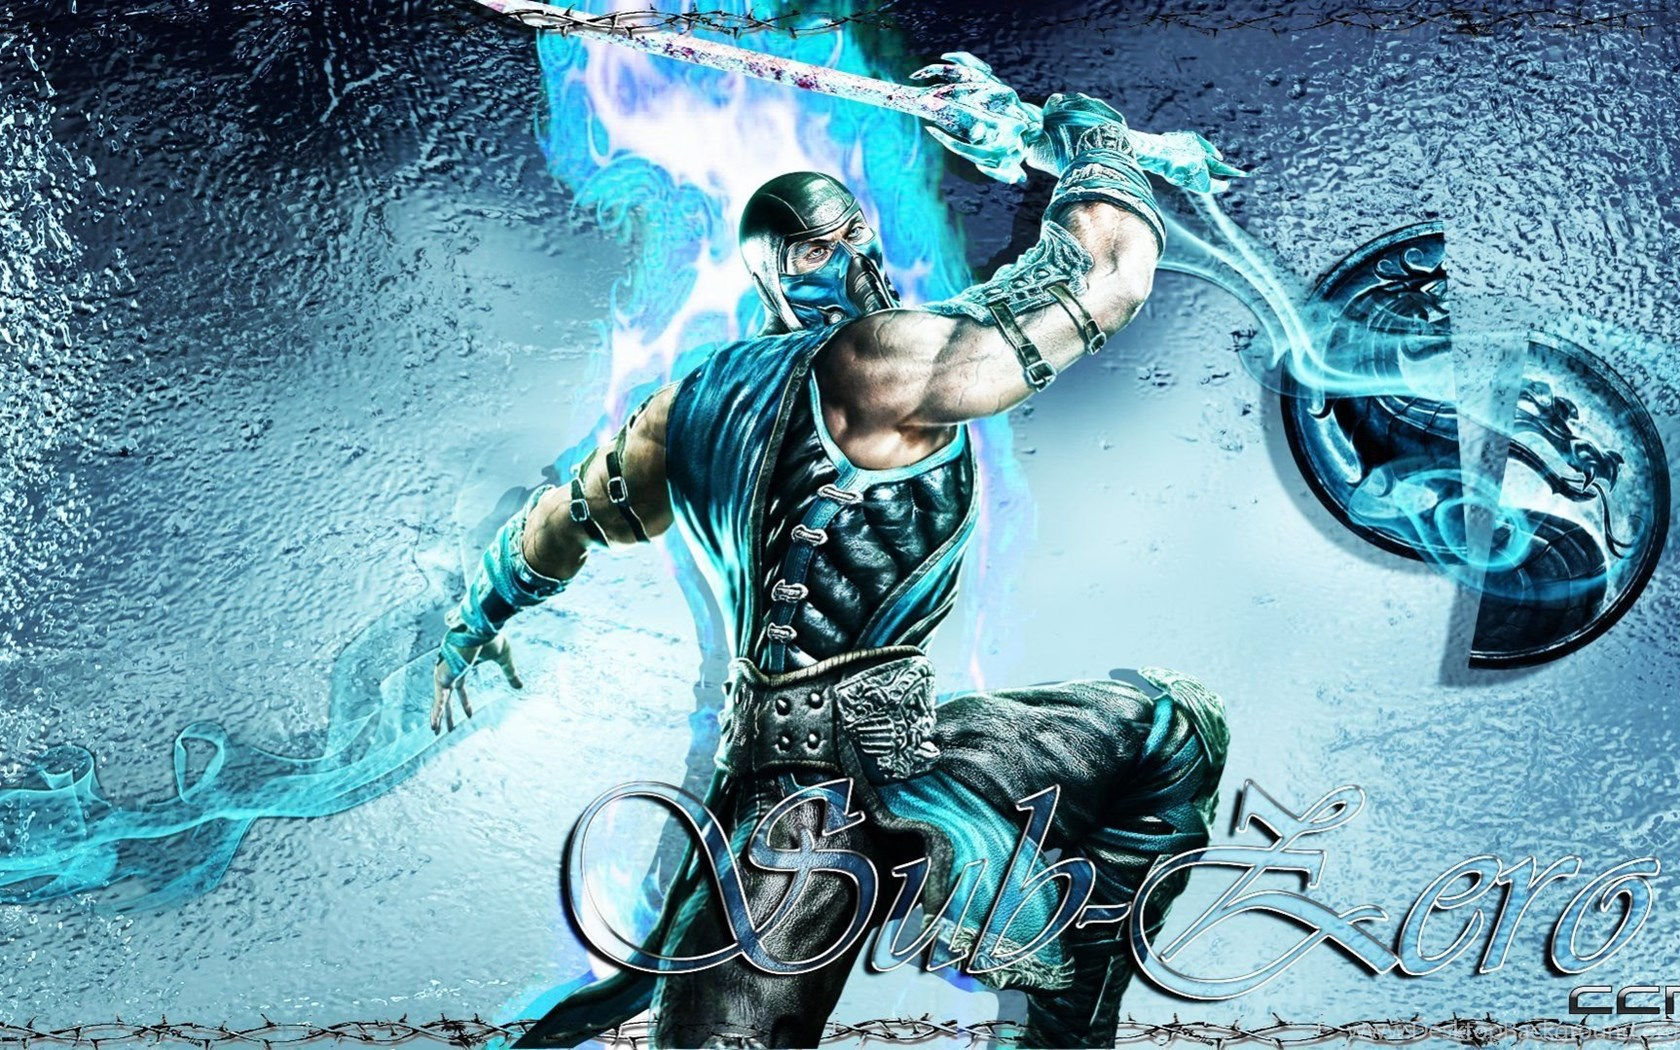 Mortal Kombat Scorpion And Sub Zero Wallpapers By Rainbowplays1 On